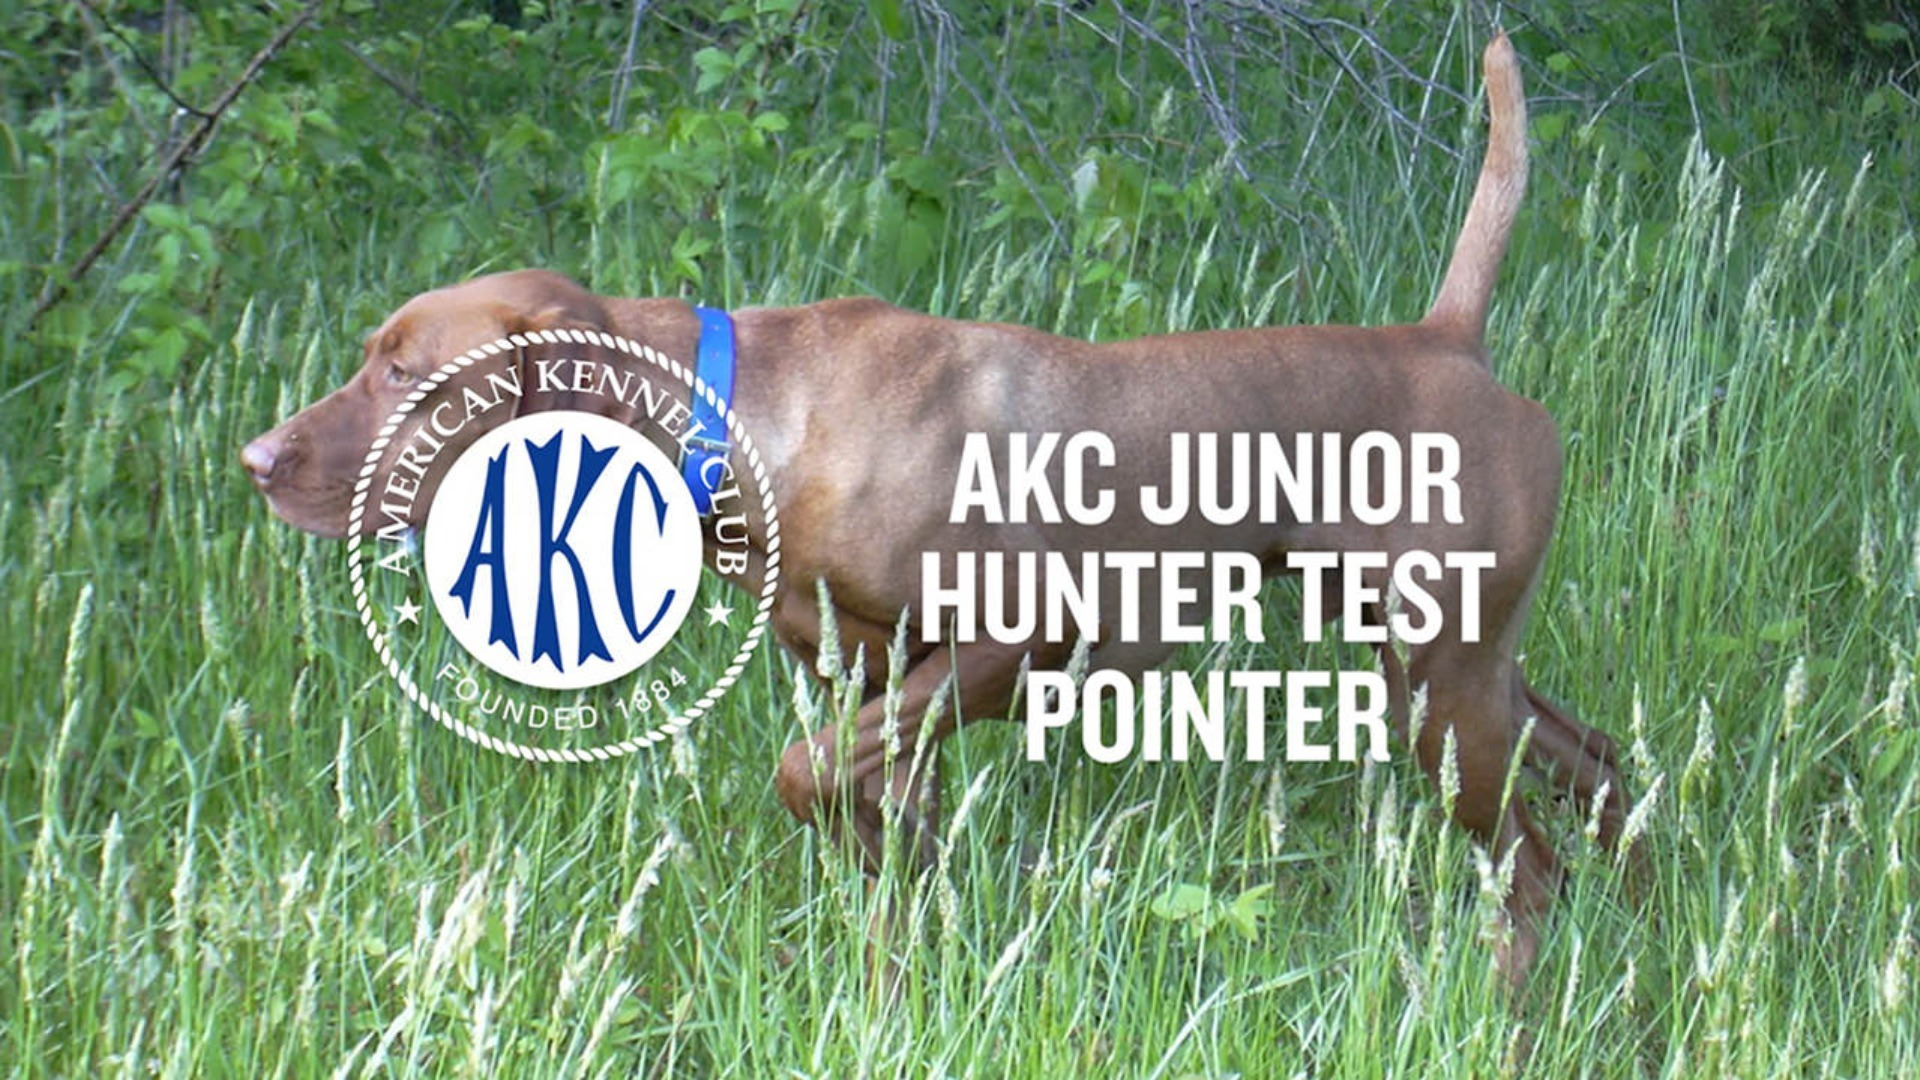 Intro to AKC - AKC Junior Hunter Test for Pointing Breeds | Intro to Dog Sports | AKC.TV